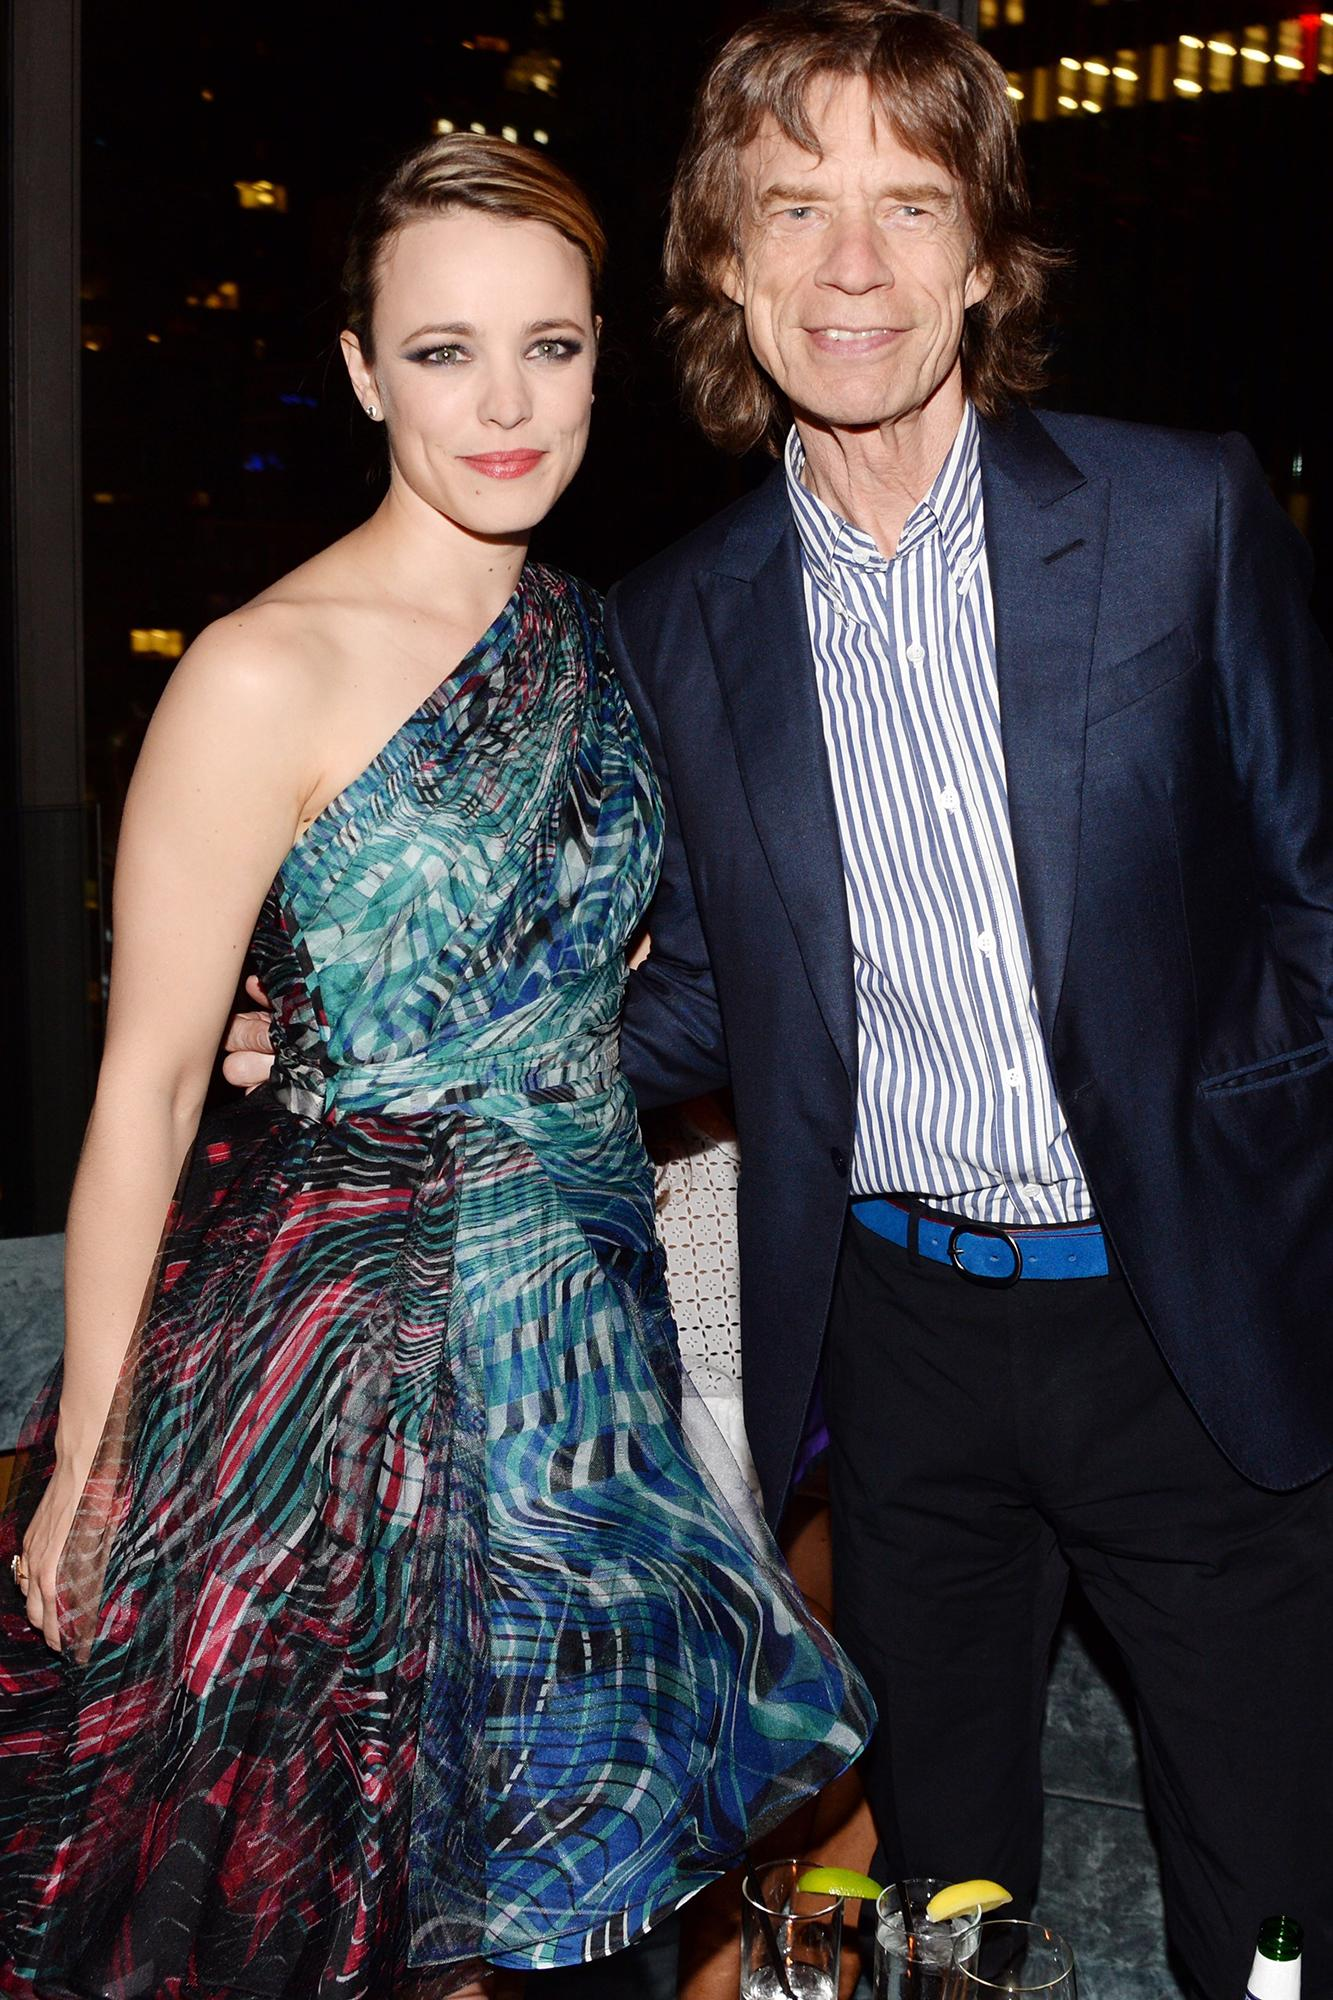 Rachel McAdams, @RealRobinWright, and a Rolling Stone—inside the premiere of #AMostWantedMan: http://t.co/MwF7WjbbXA http://t.co/M77HP5p6IJ